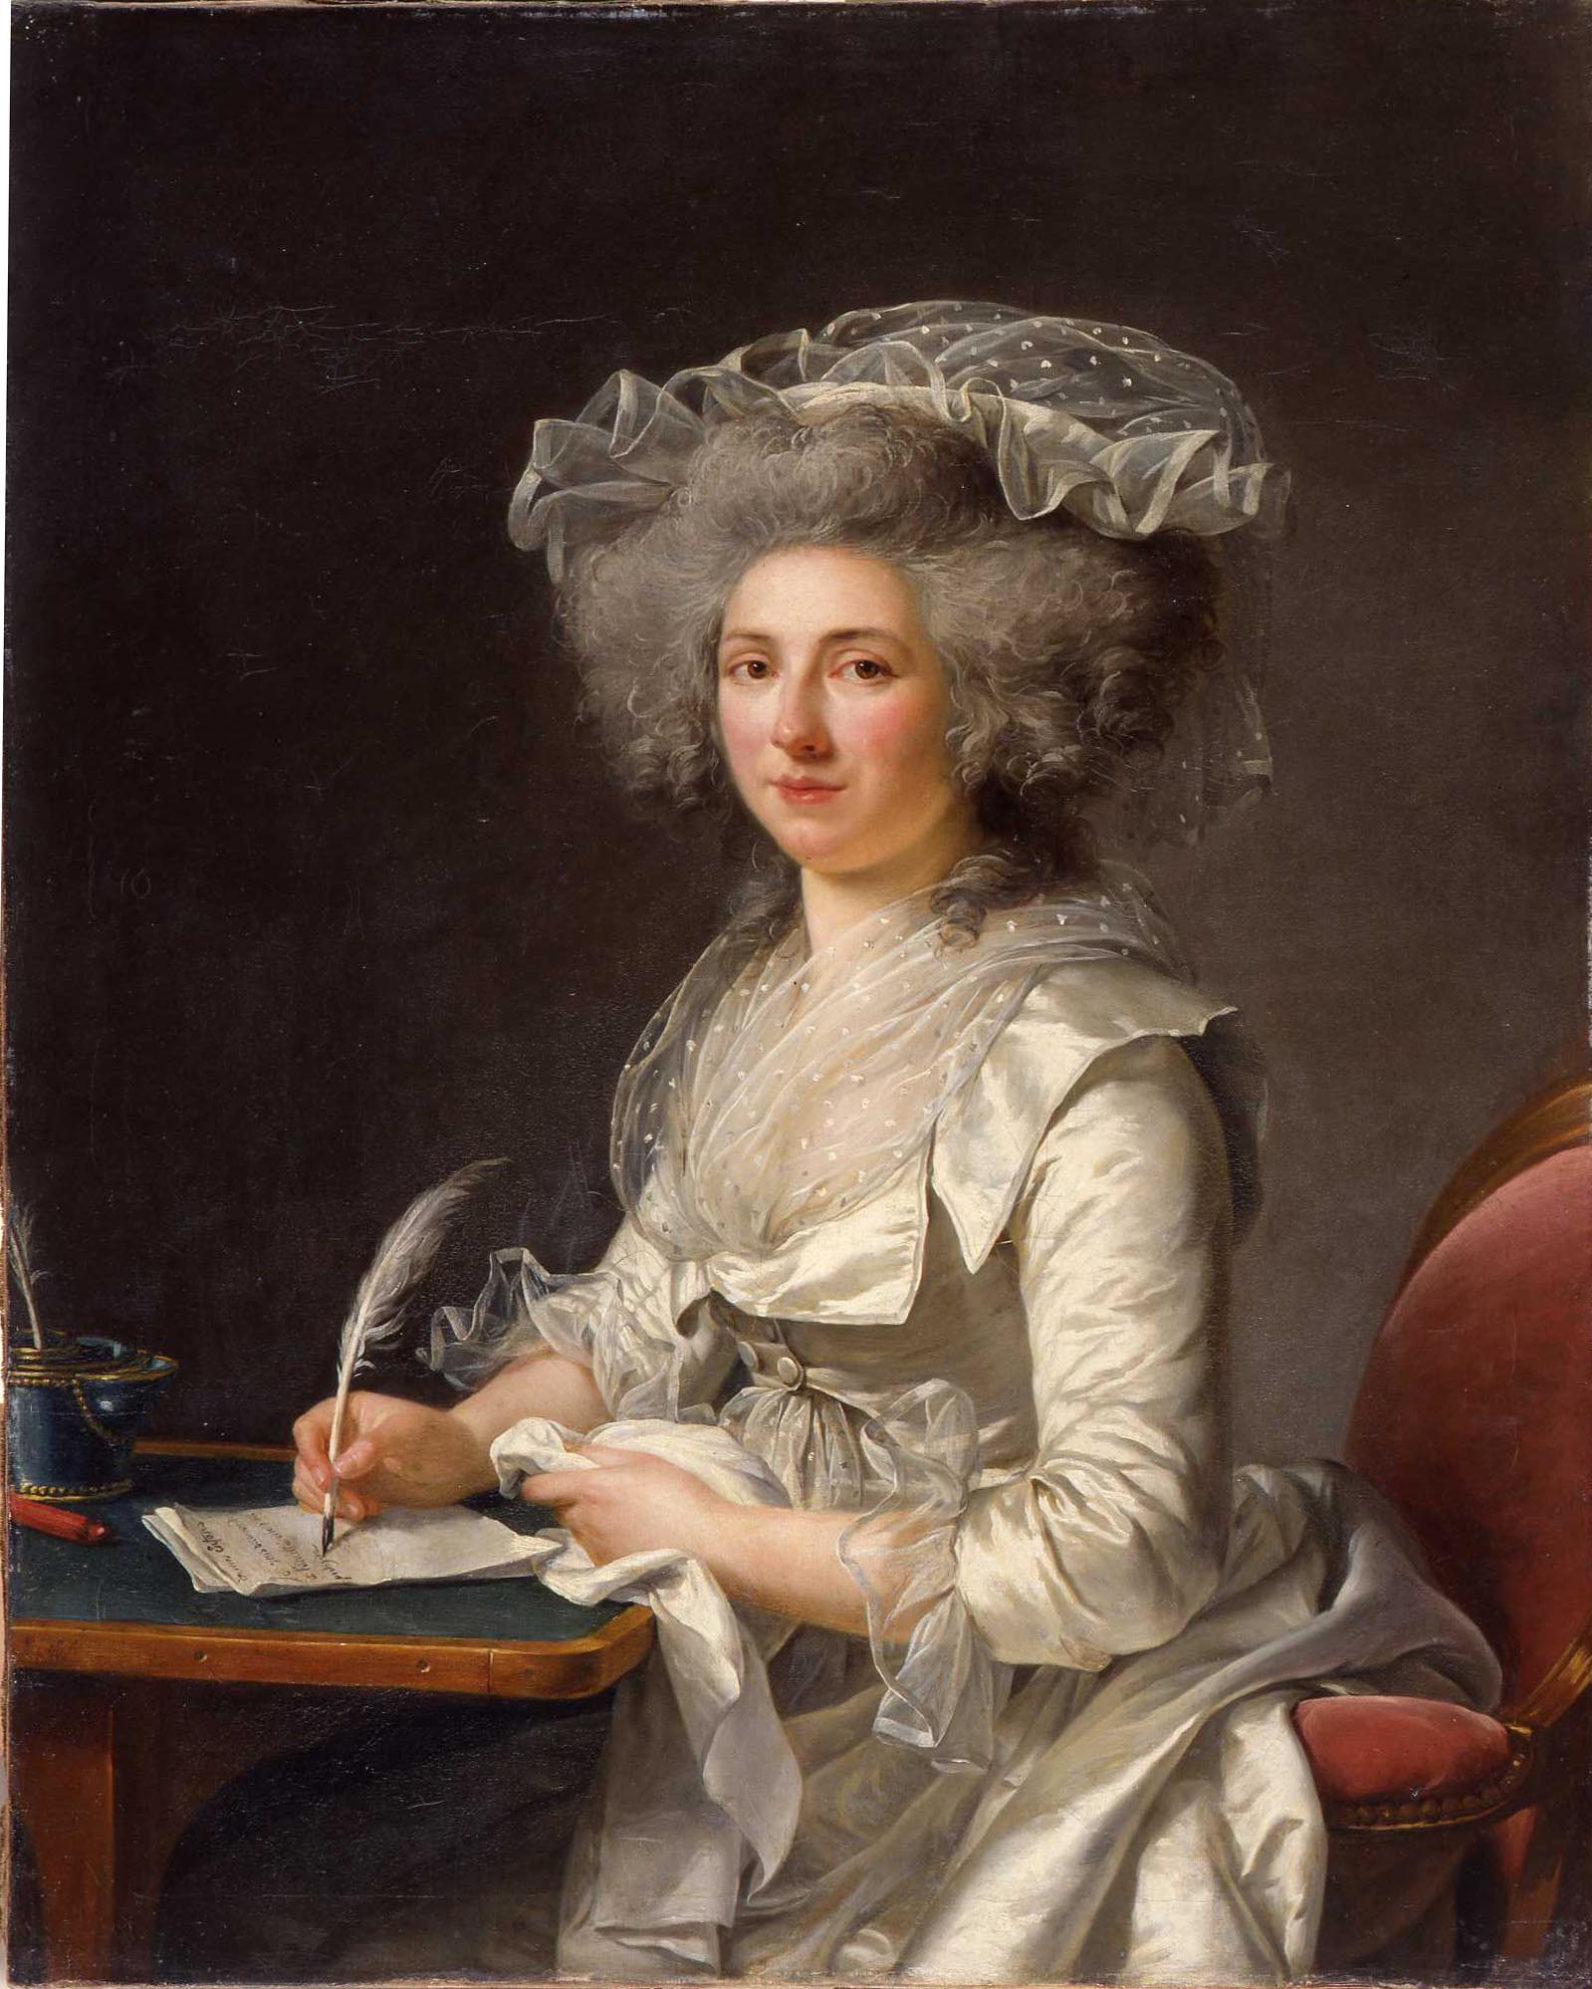 A portait of a woman dressed in fine ivory silks sitting at a writing desk grasping a feather quill pen in her right hand. She gazes out towards the viewer and her skin is a pale, pinkish hue, with a baroque hairstyle and tulle bonnet.